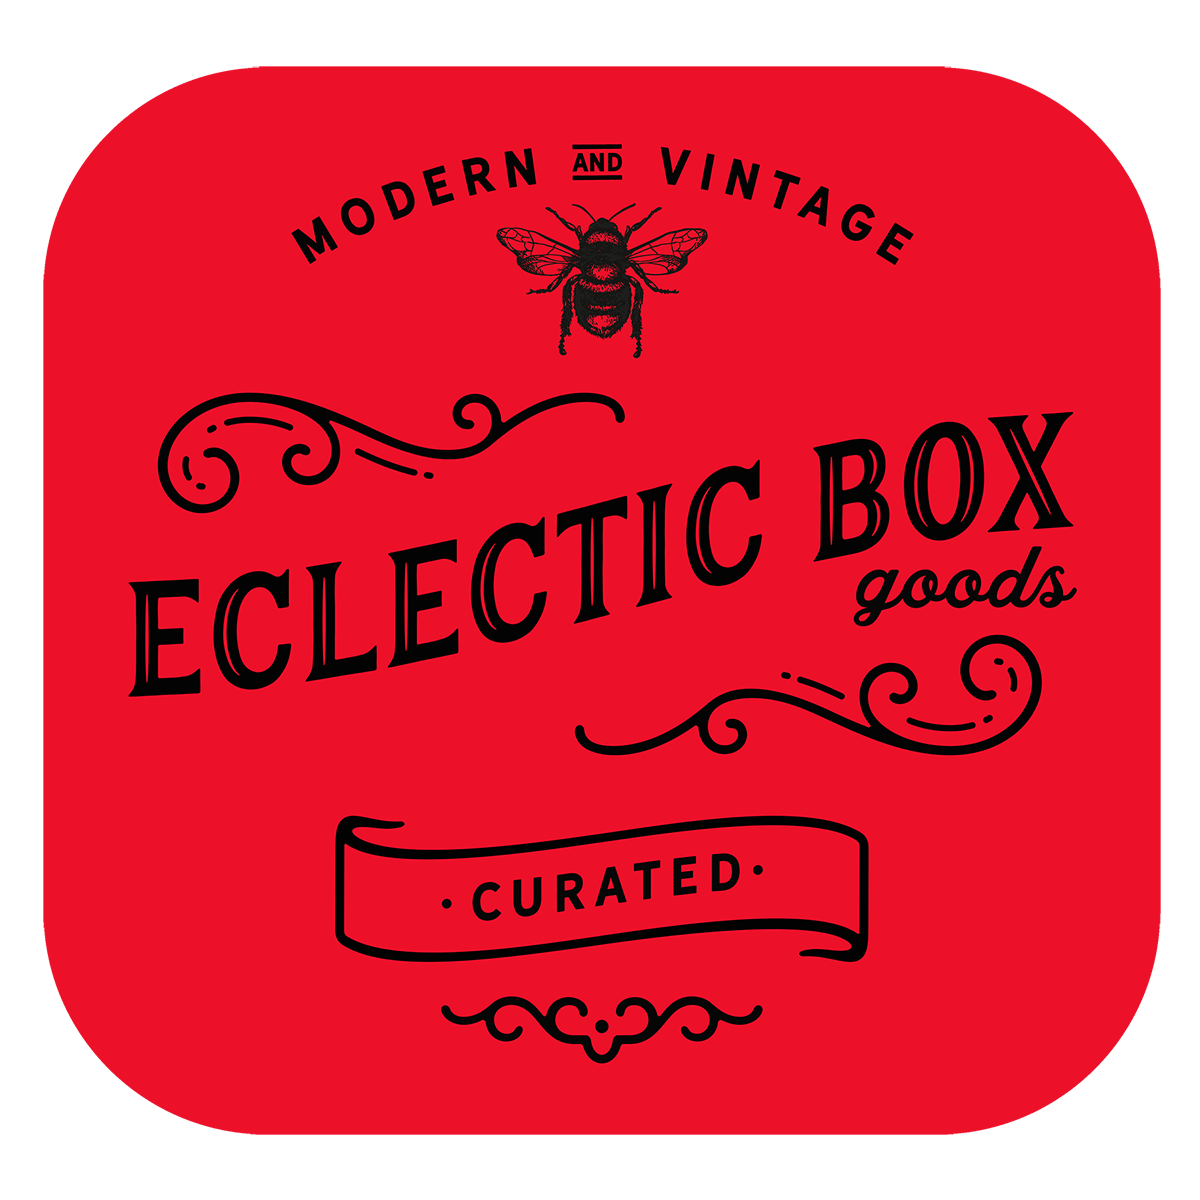 Eclectic Box Goods image 0